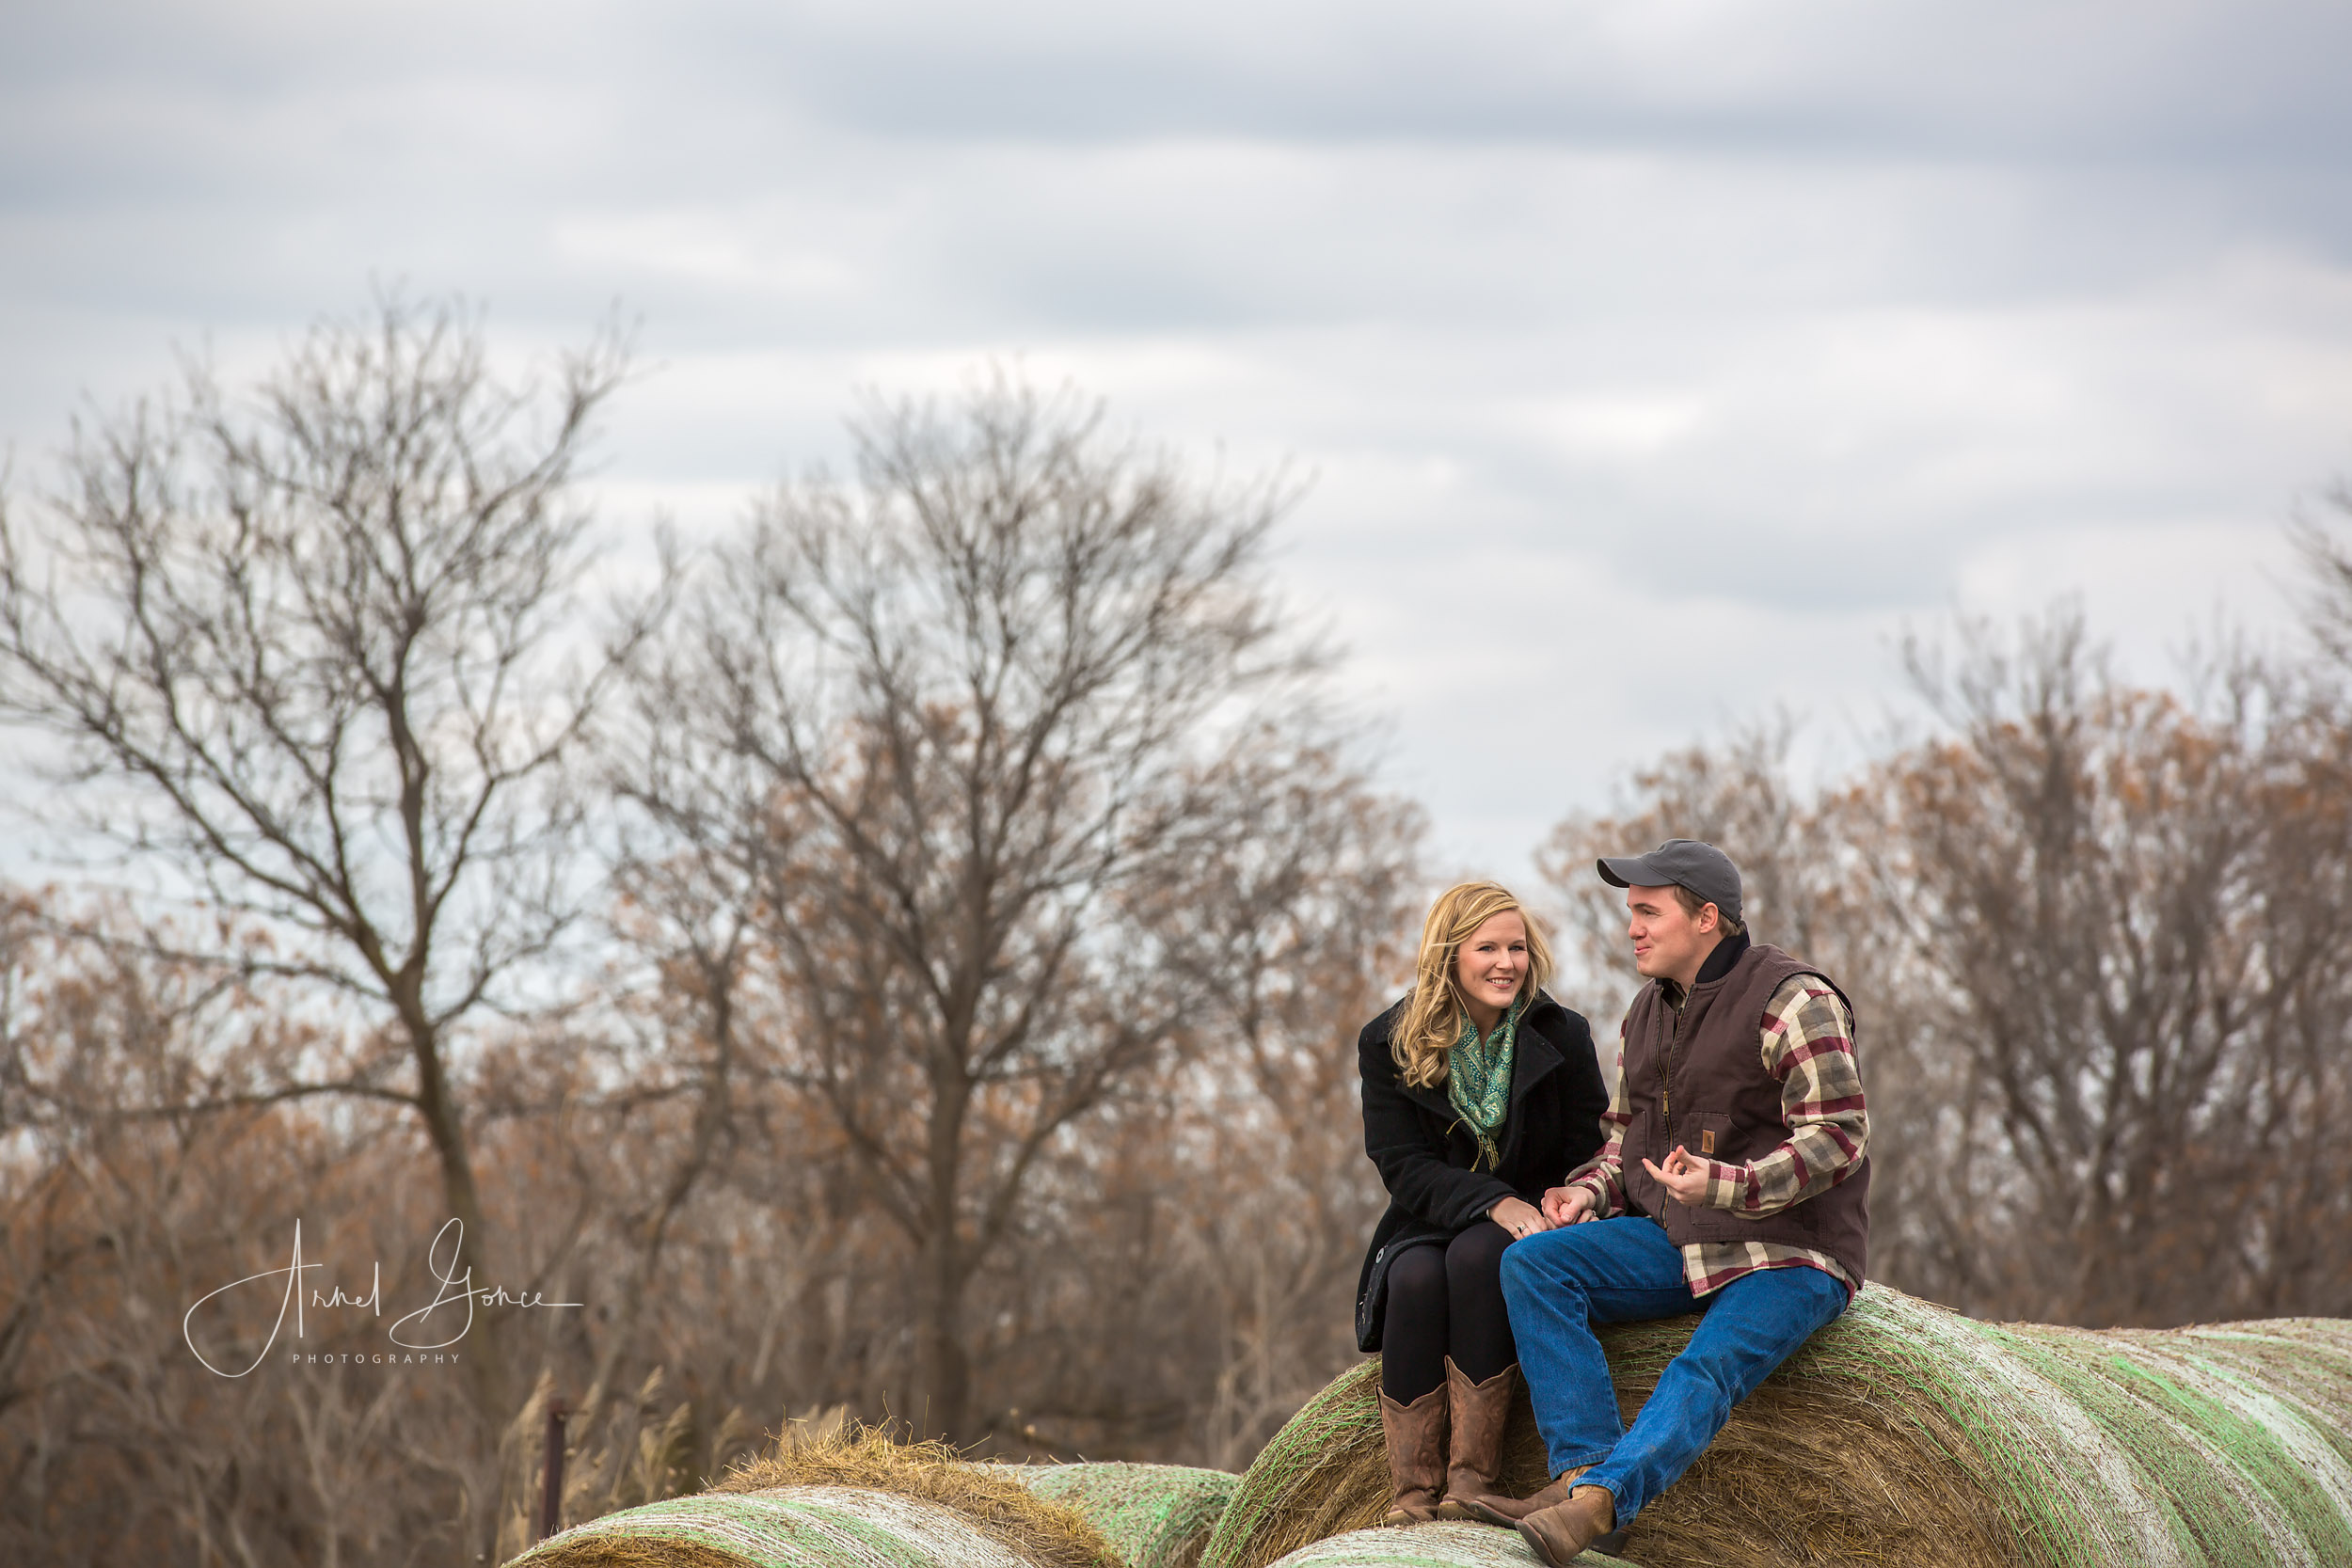 Man and woman sitting side by side on a bale of hay talking